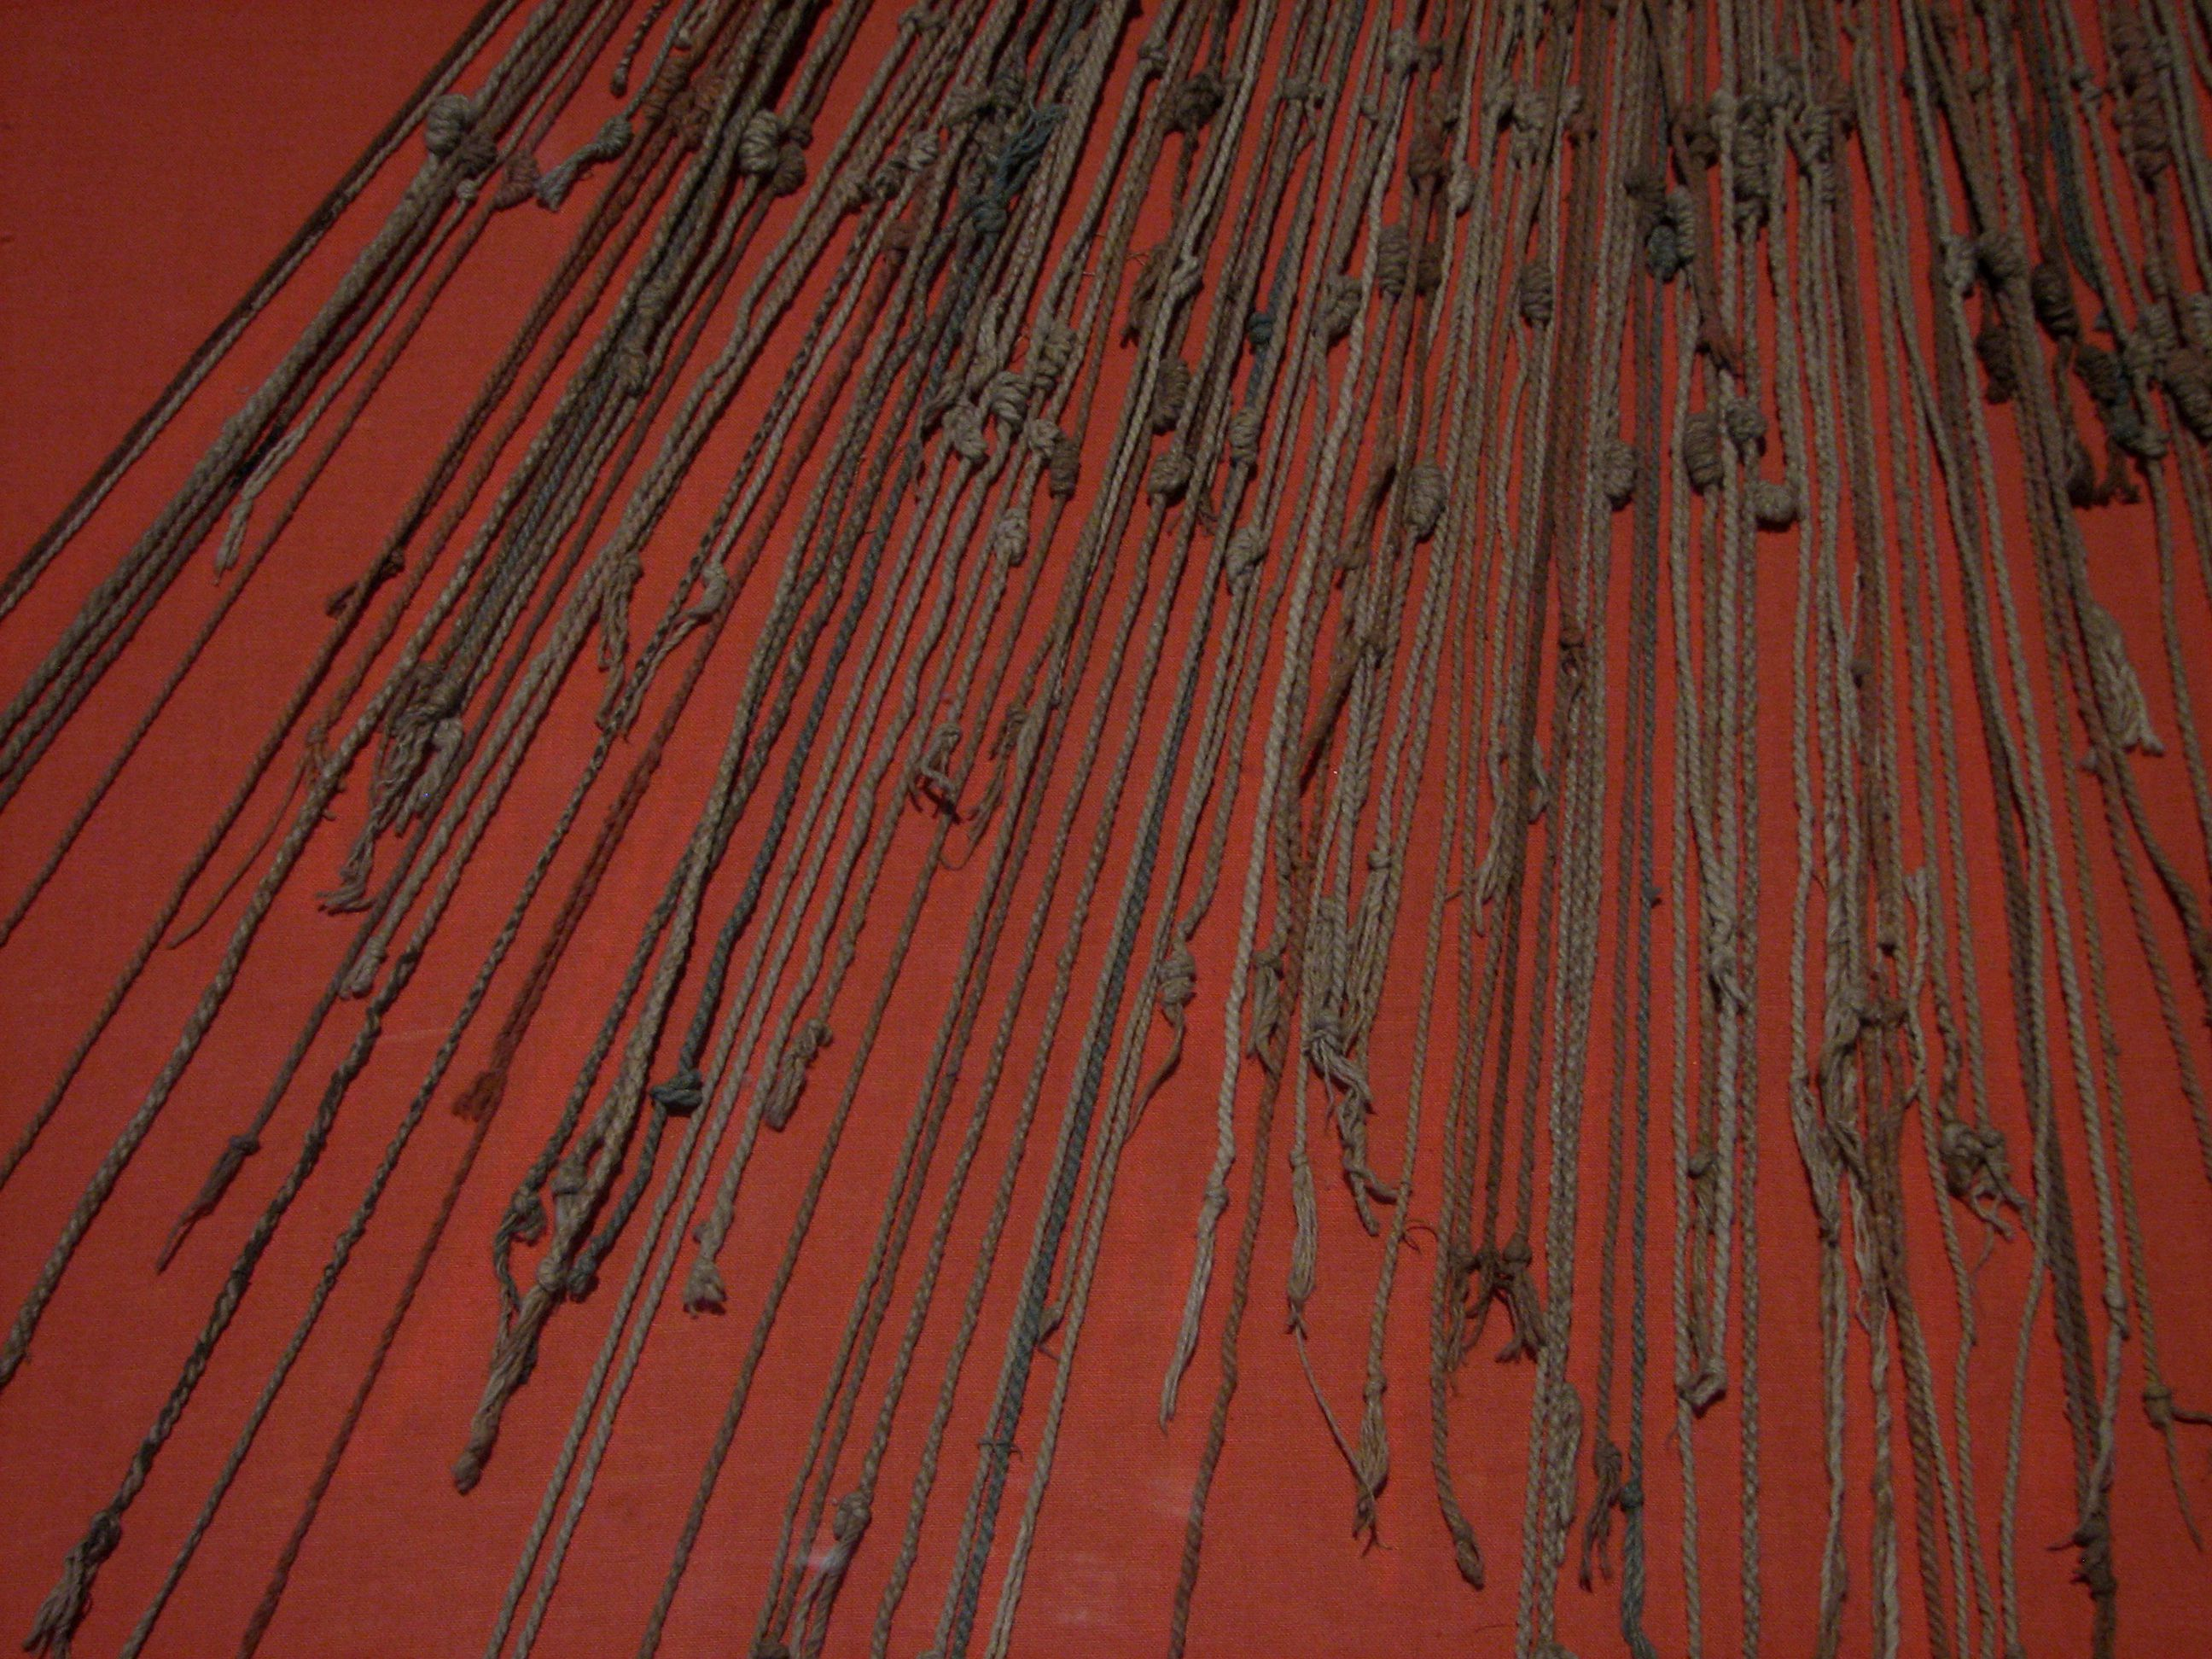 Quipu South America S Undeciphered Writing System